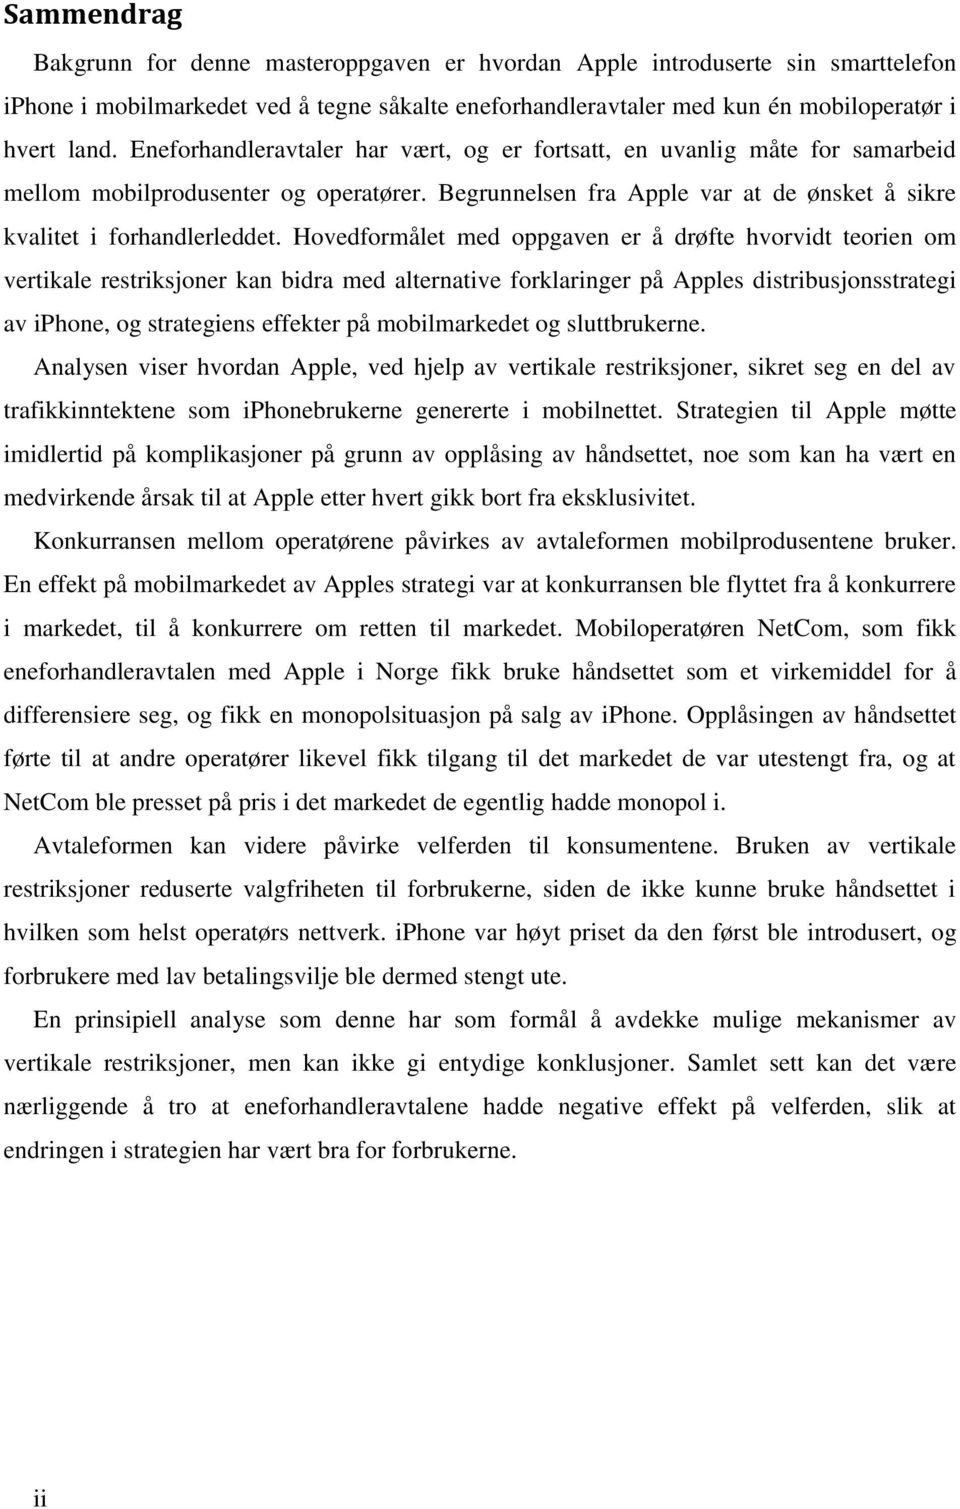 Hovedformålet med oppgaven er å drøfte hvorvidt teorien om vertikale restriksjoner kan bidra med alternative forklaringer på Apples distribusjonsstrategi av iphone, og strategiens effekter på